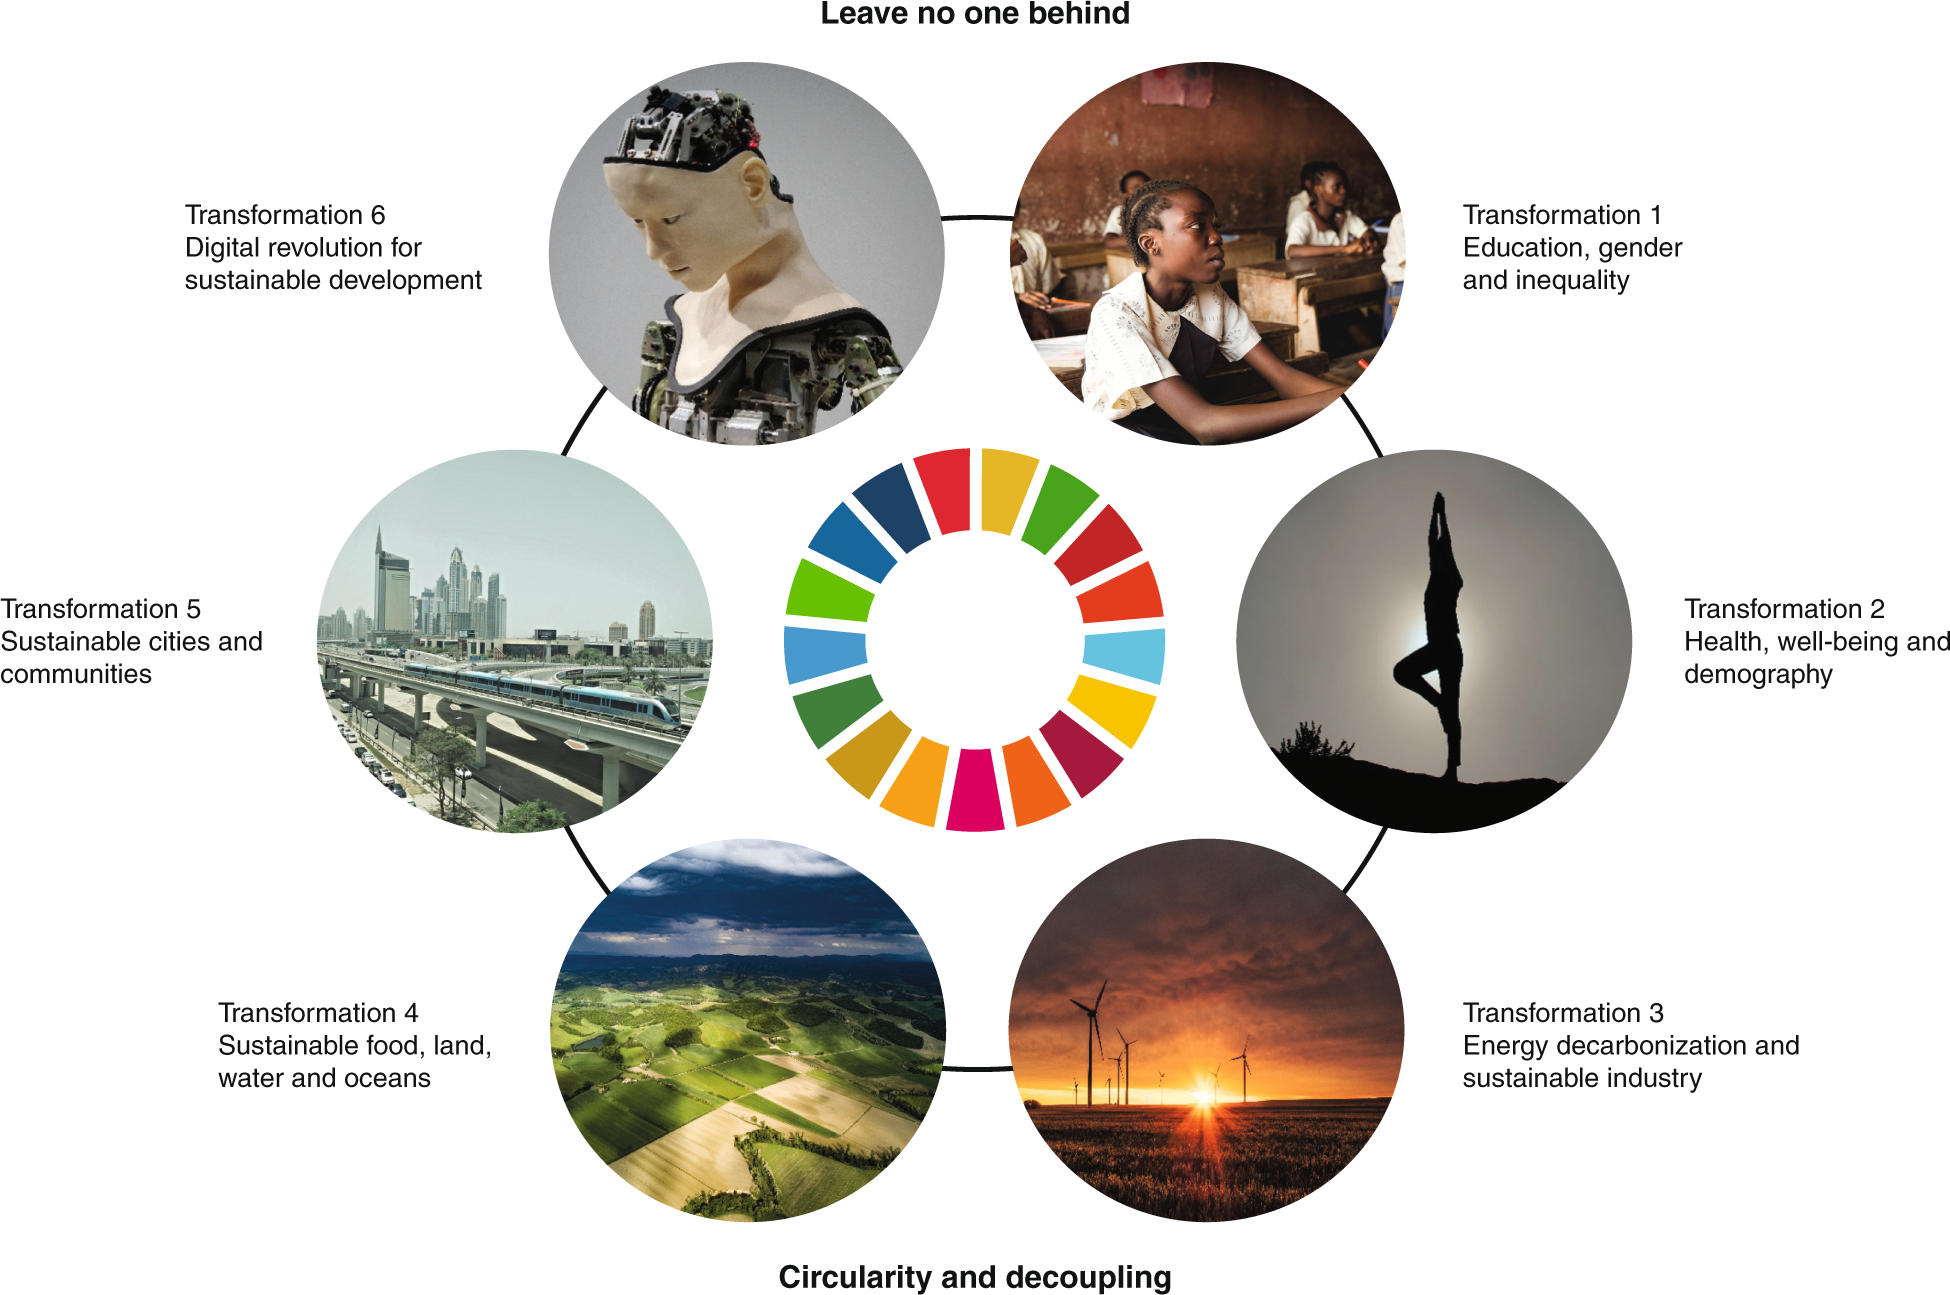 Six Transformations to achieve the Sustainable Development